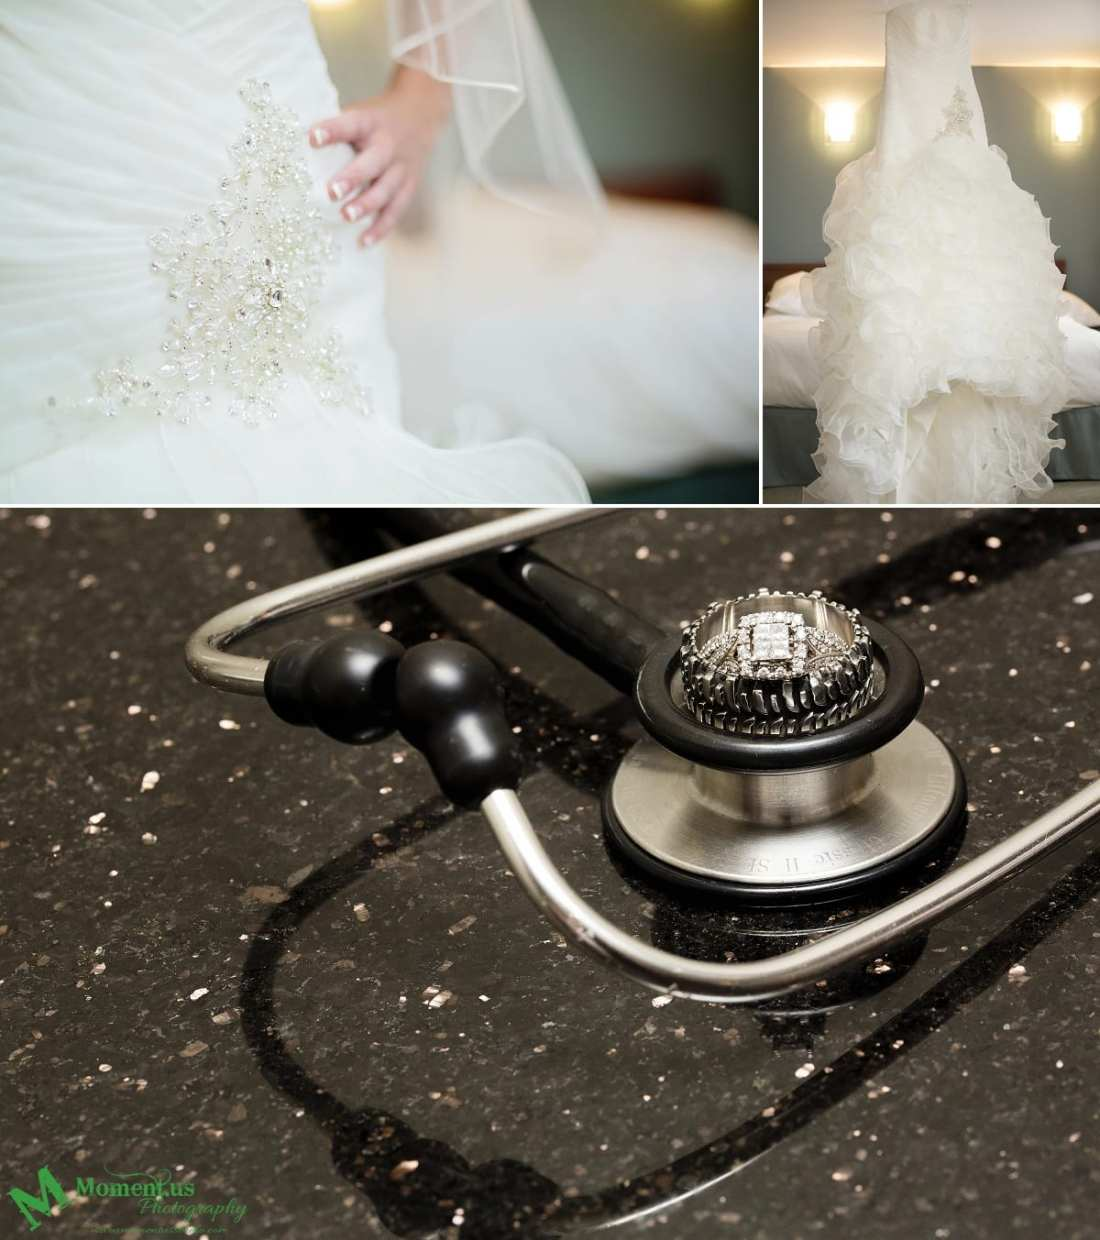 stethoscope and rings for NAVCentre wedding - Cornwall wedding photographer